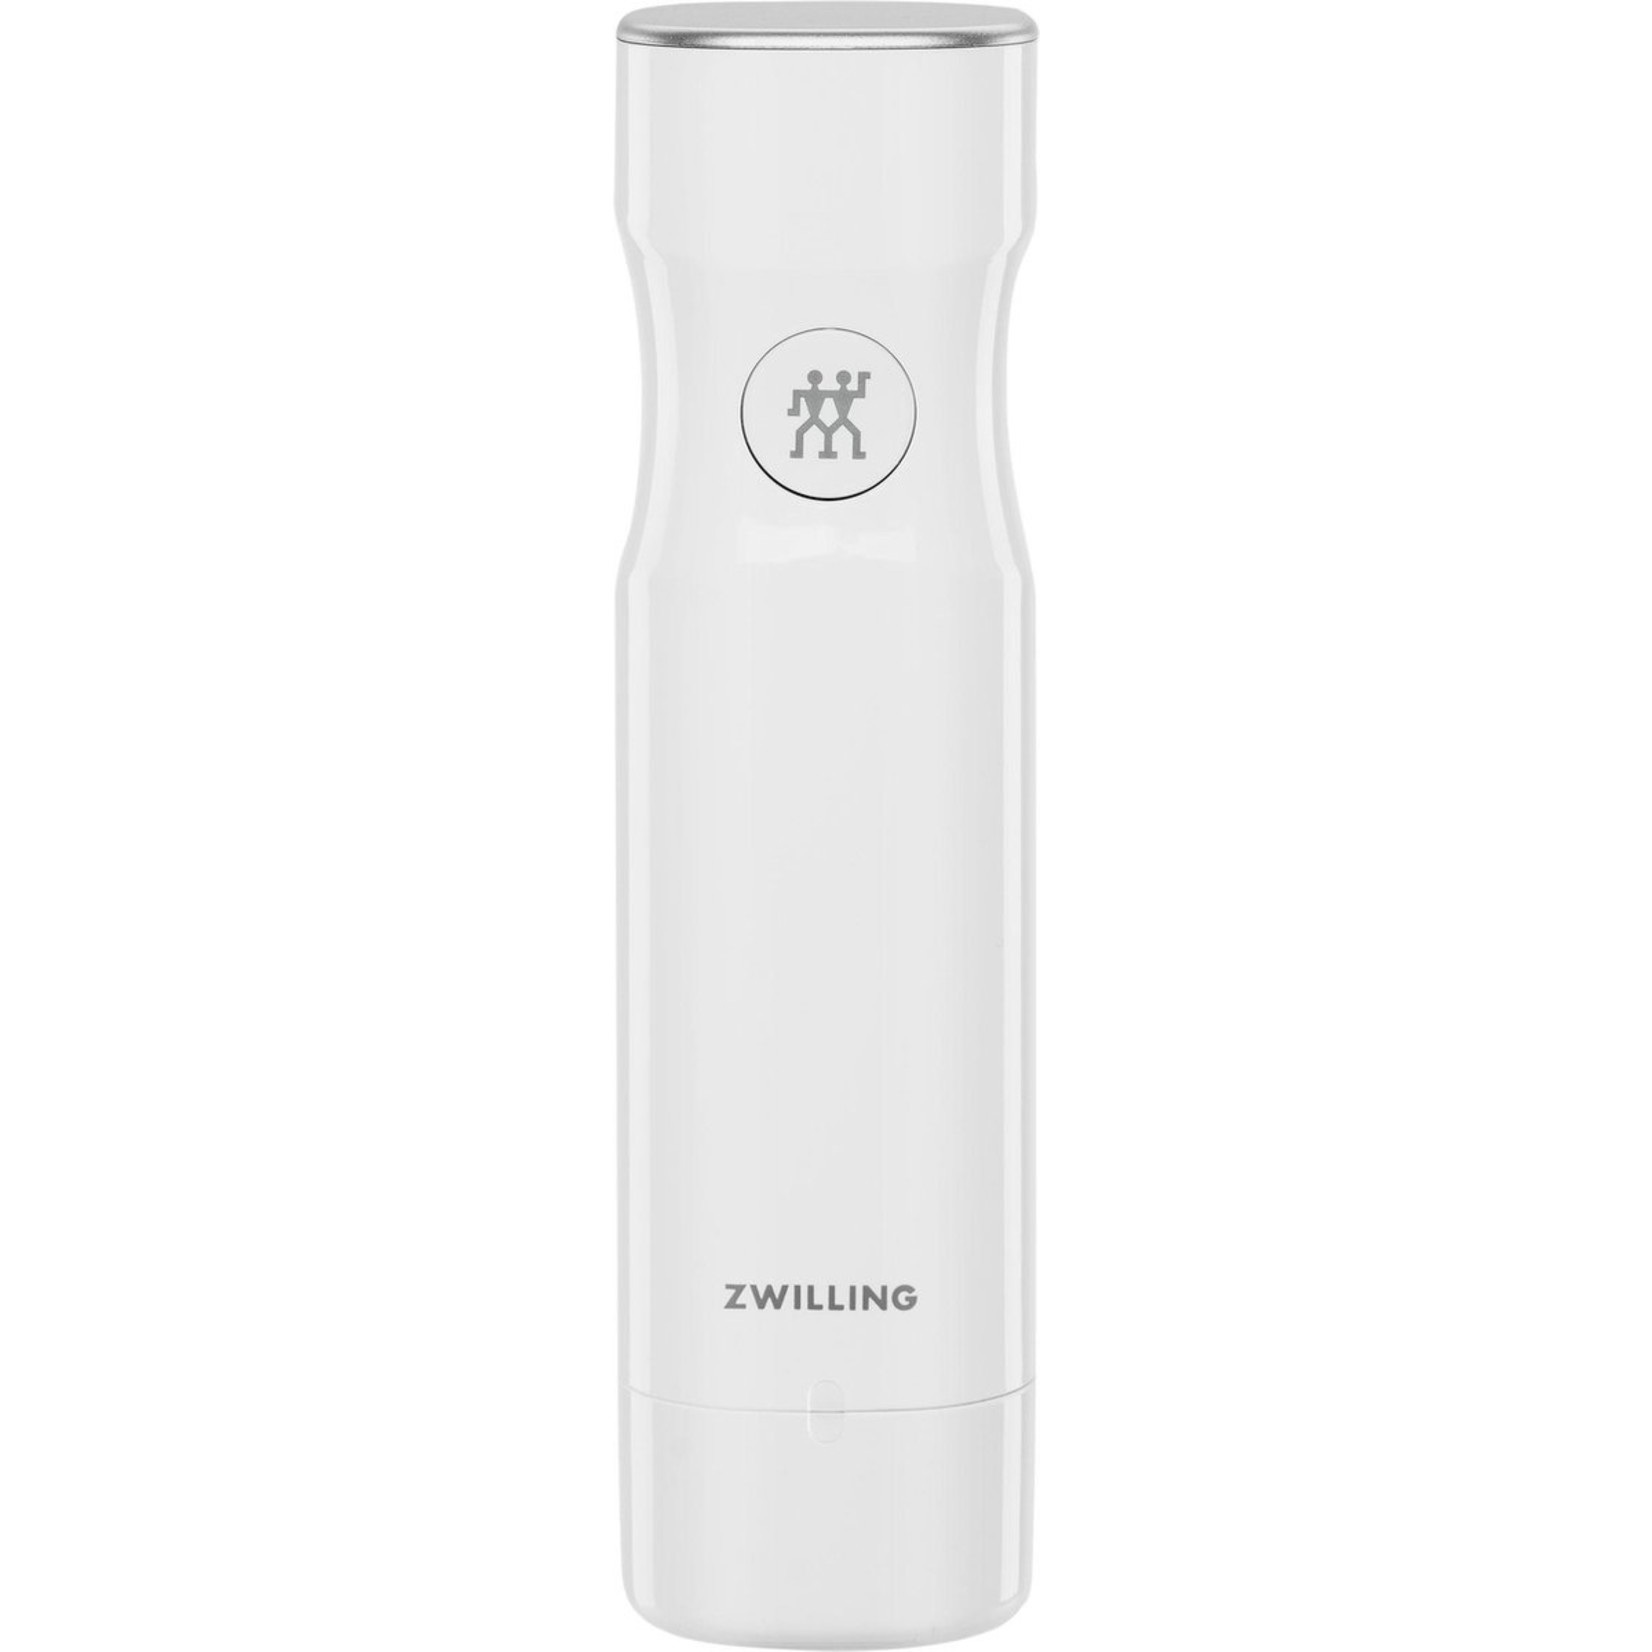 Zwilling Zwilling Fresh & Save Vacuumpomp met USB lader